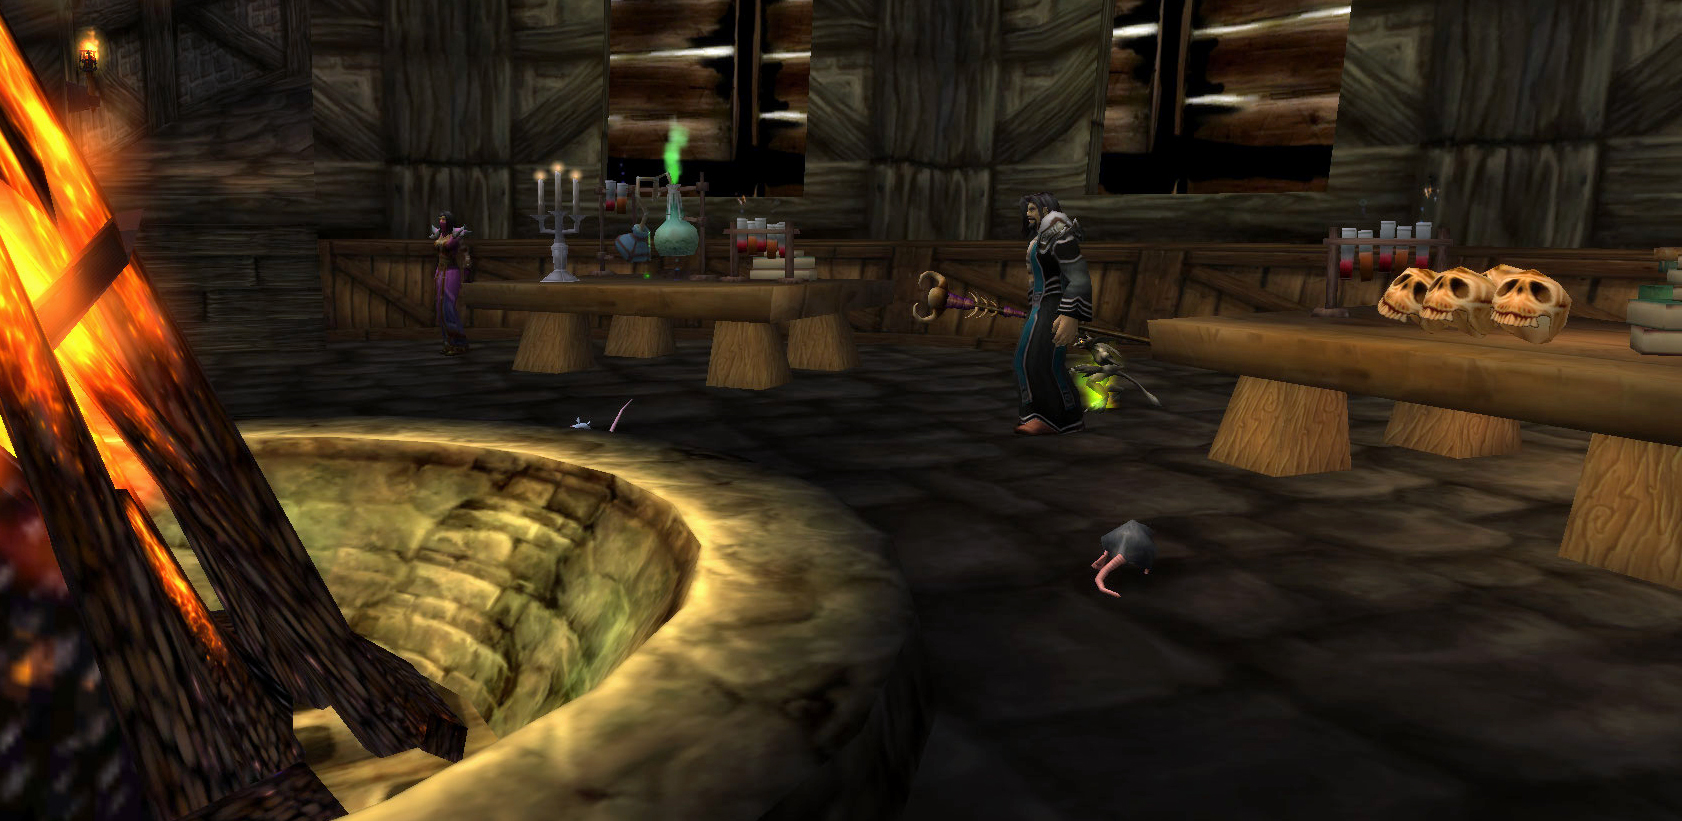 WoW Classic Warlock Trainer and Demon Trainer Locations